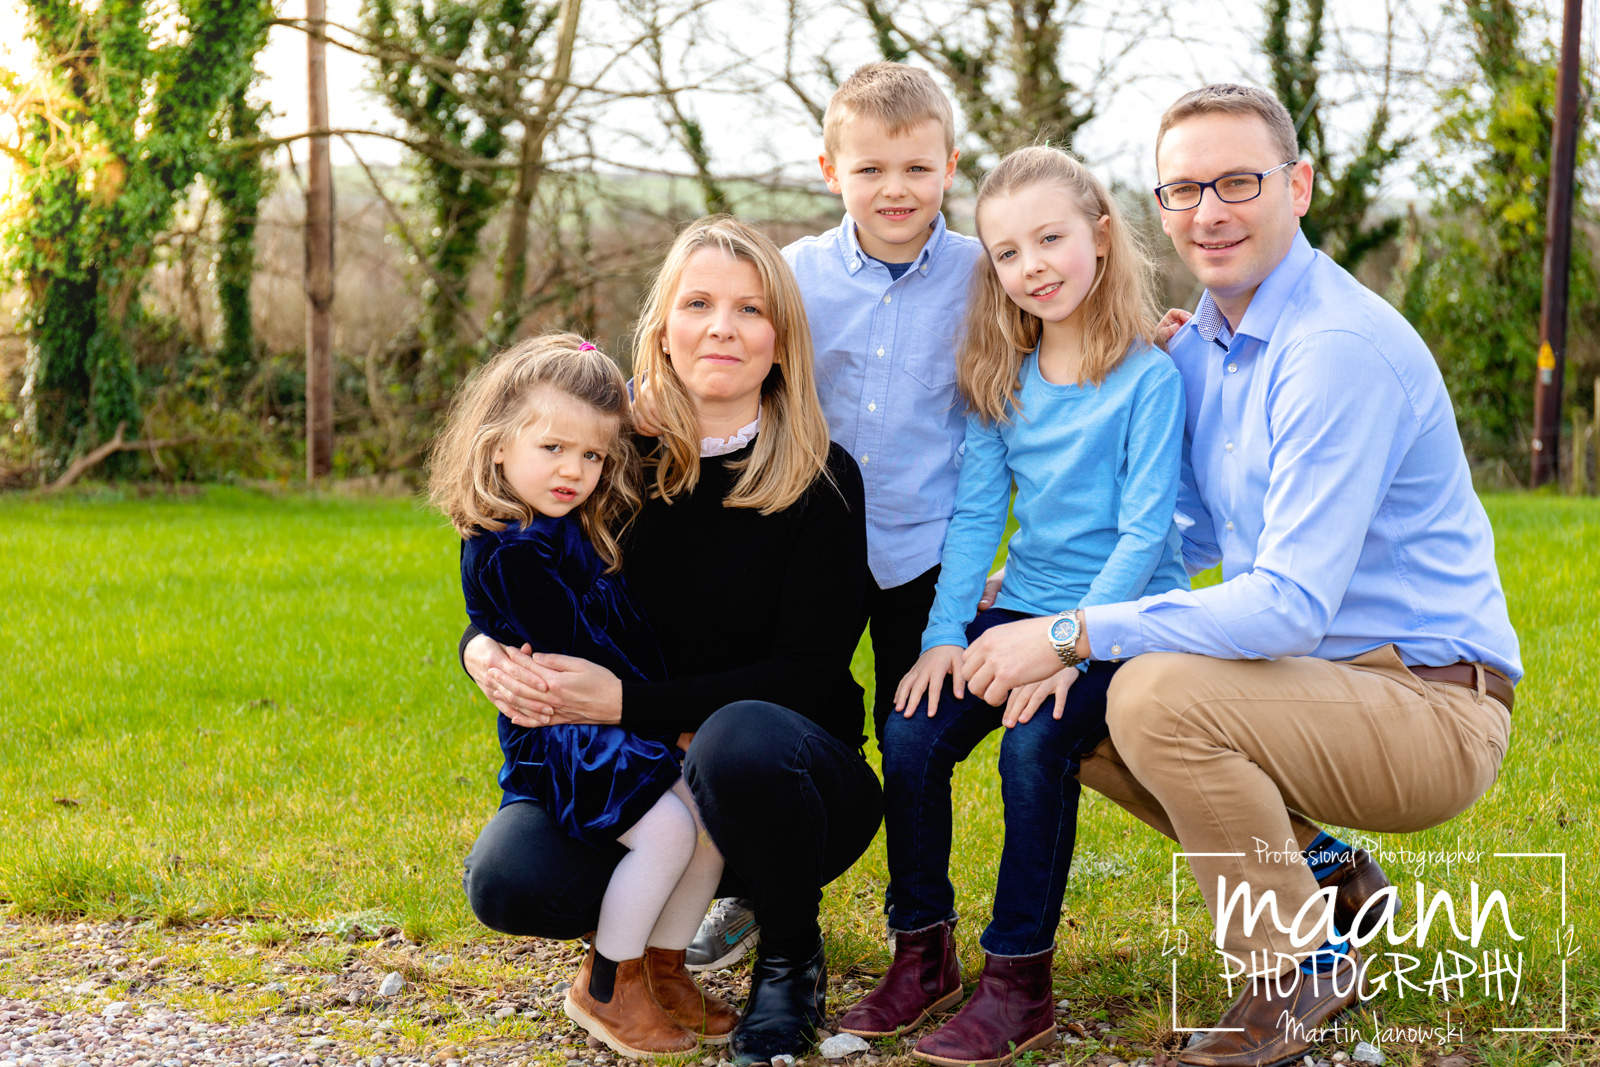 Family Photography | Outdoor Photo Session | Children Photography